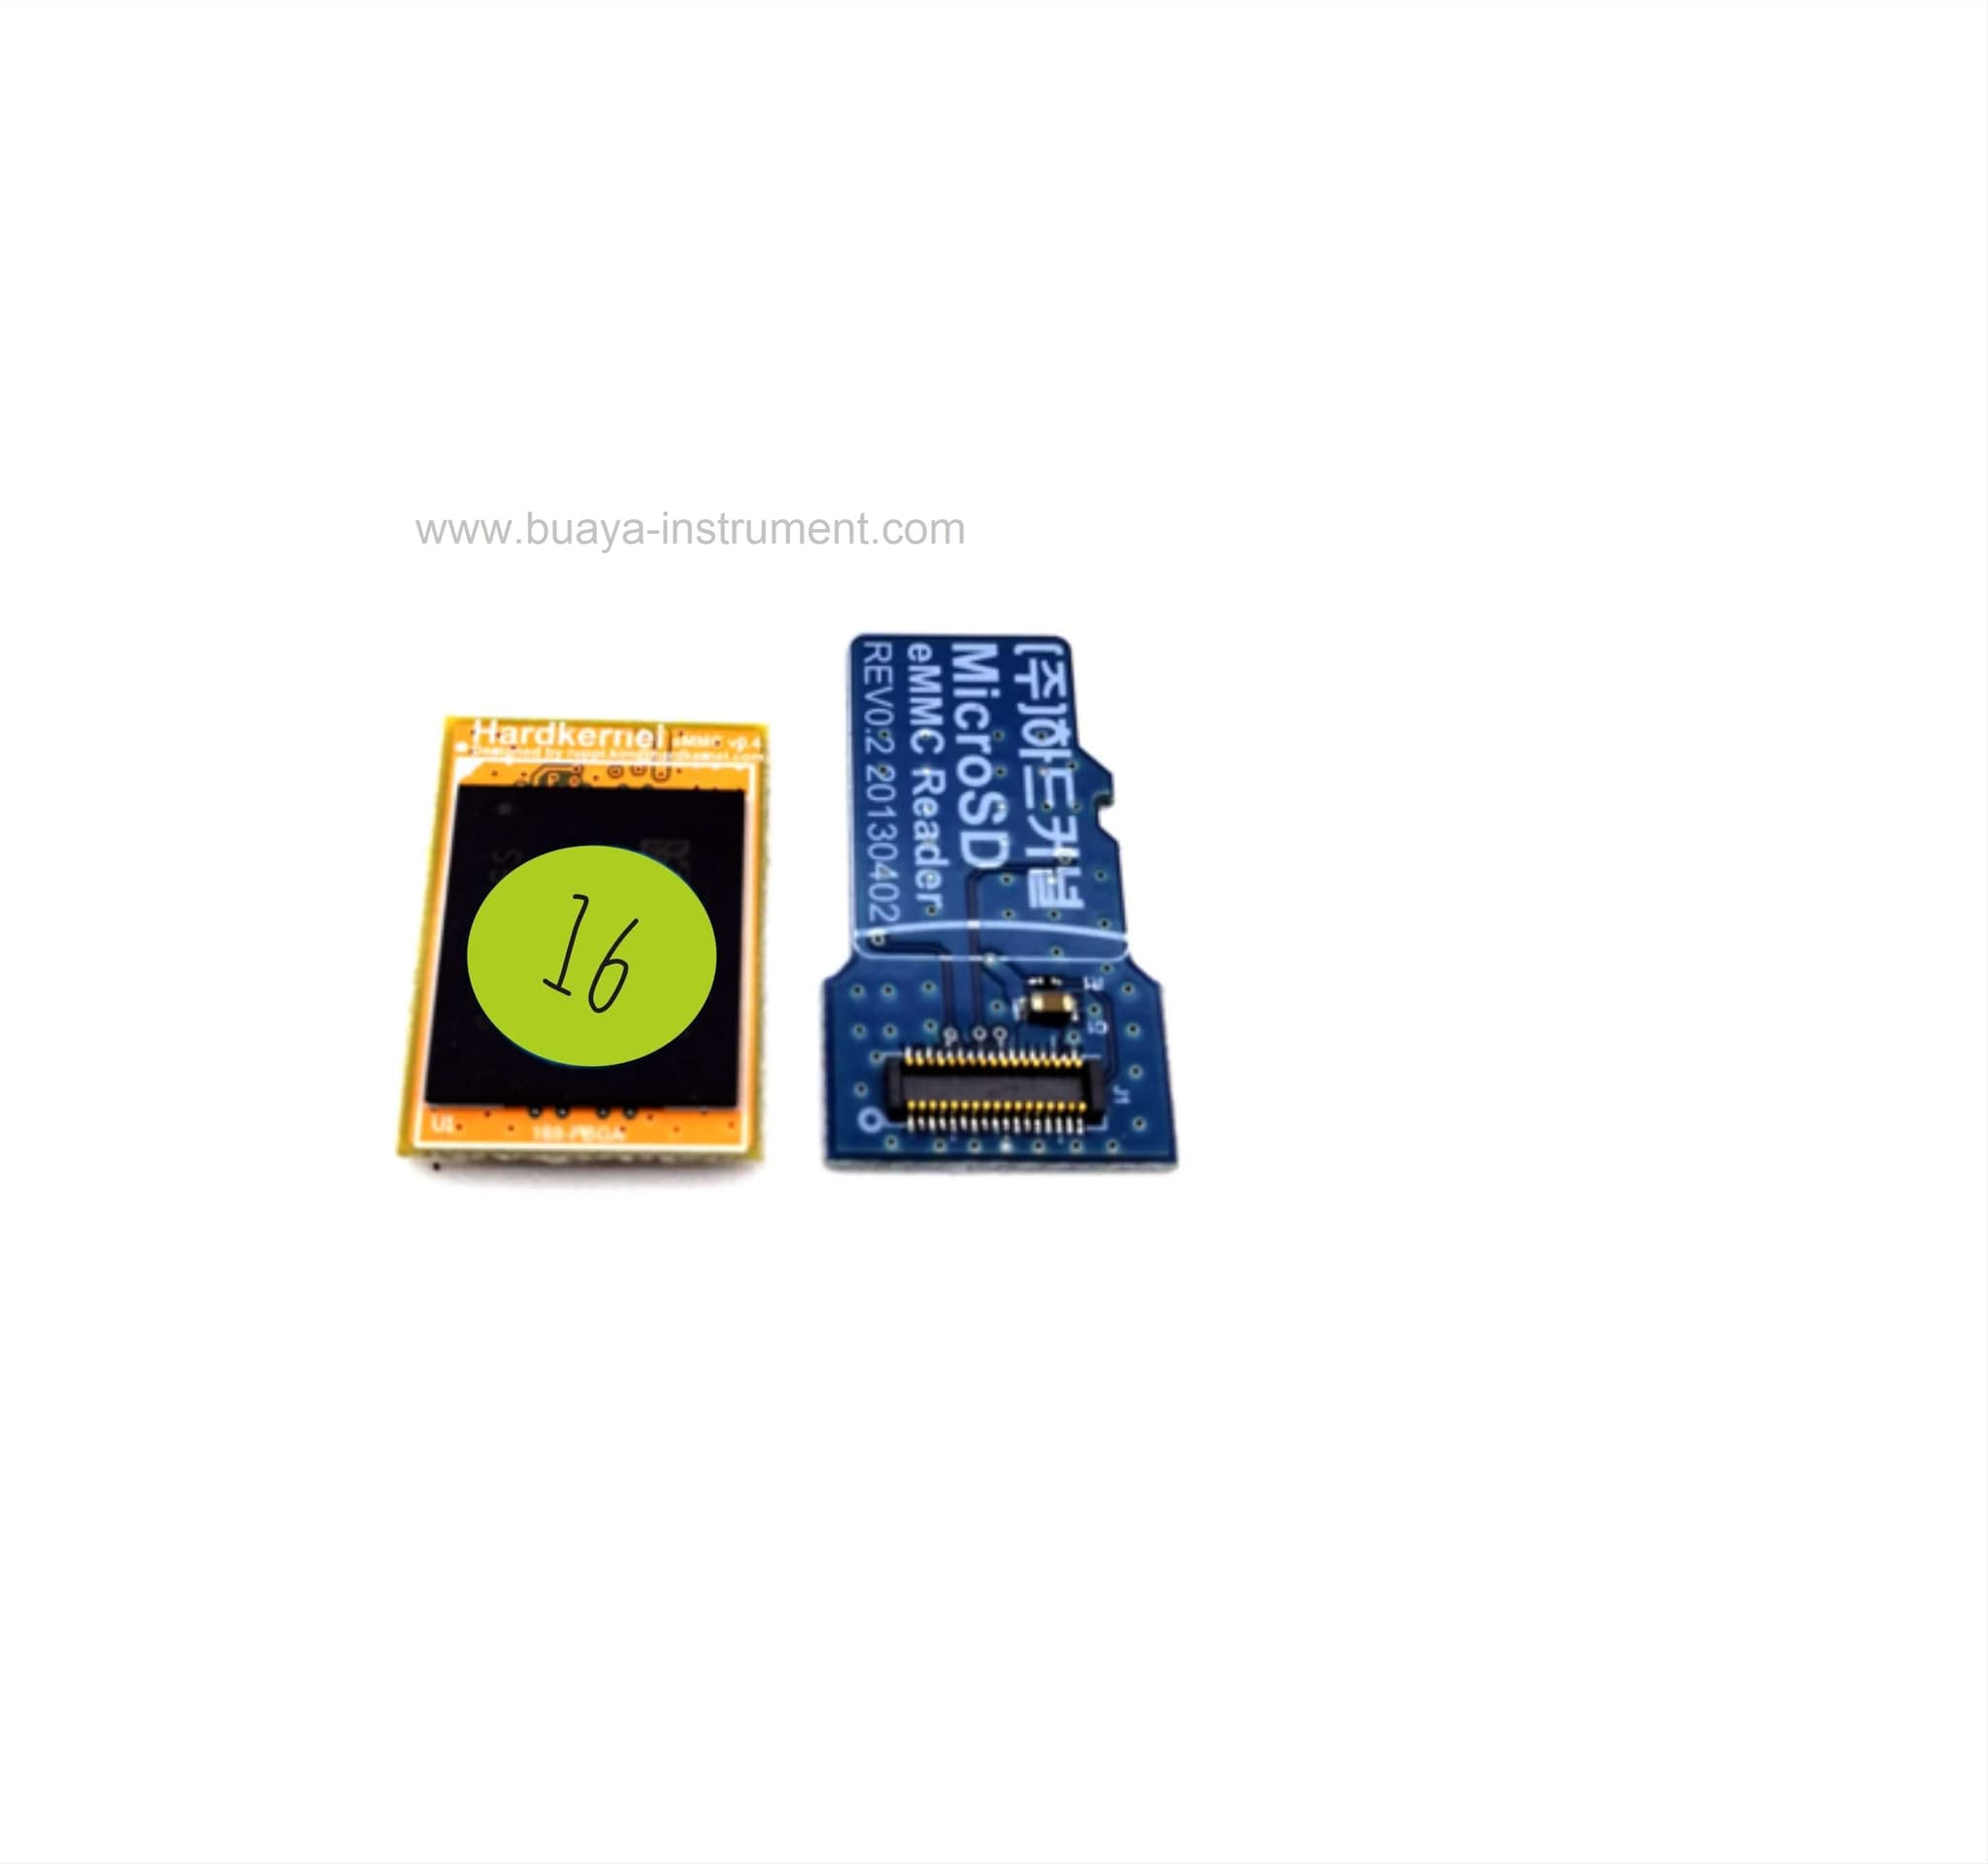 Jual Module eMMC 16GB Android for ODROID C1+ C0 with